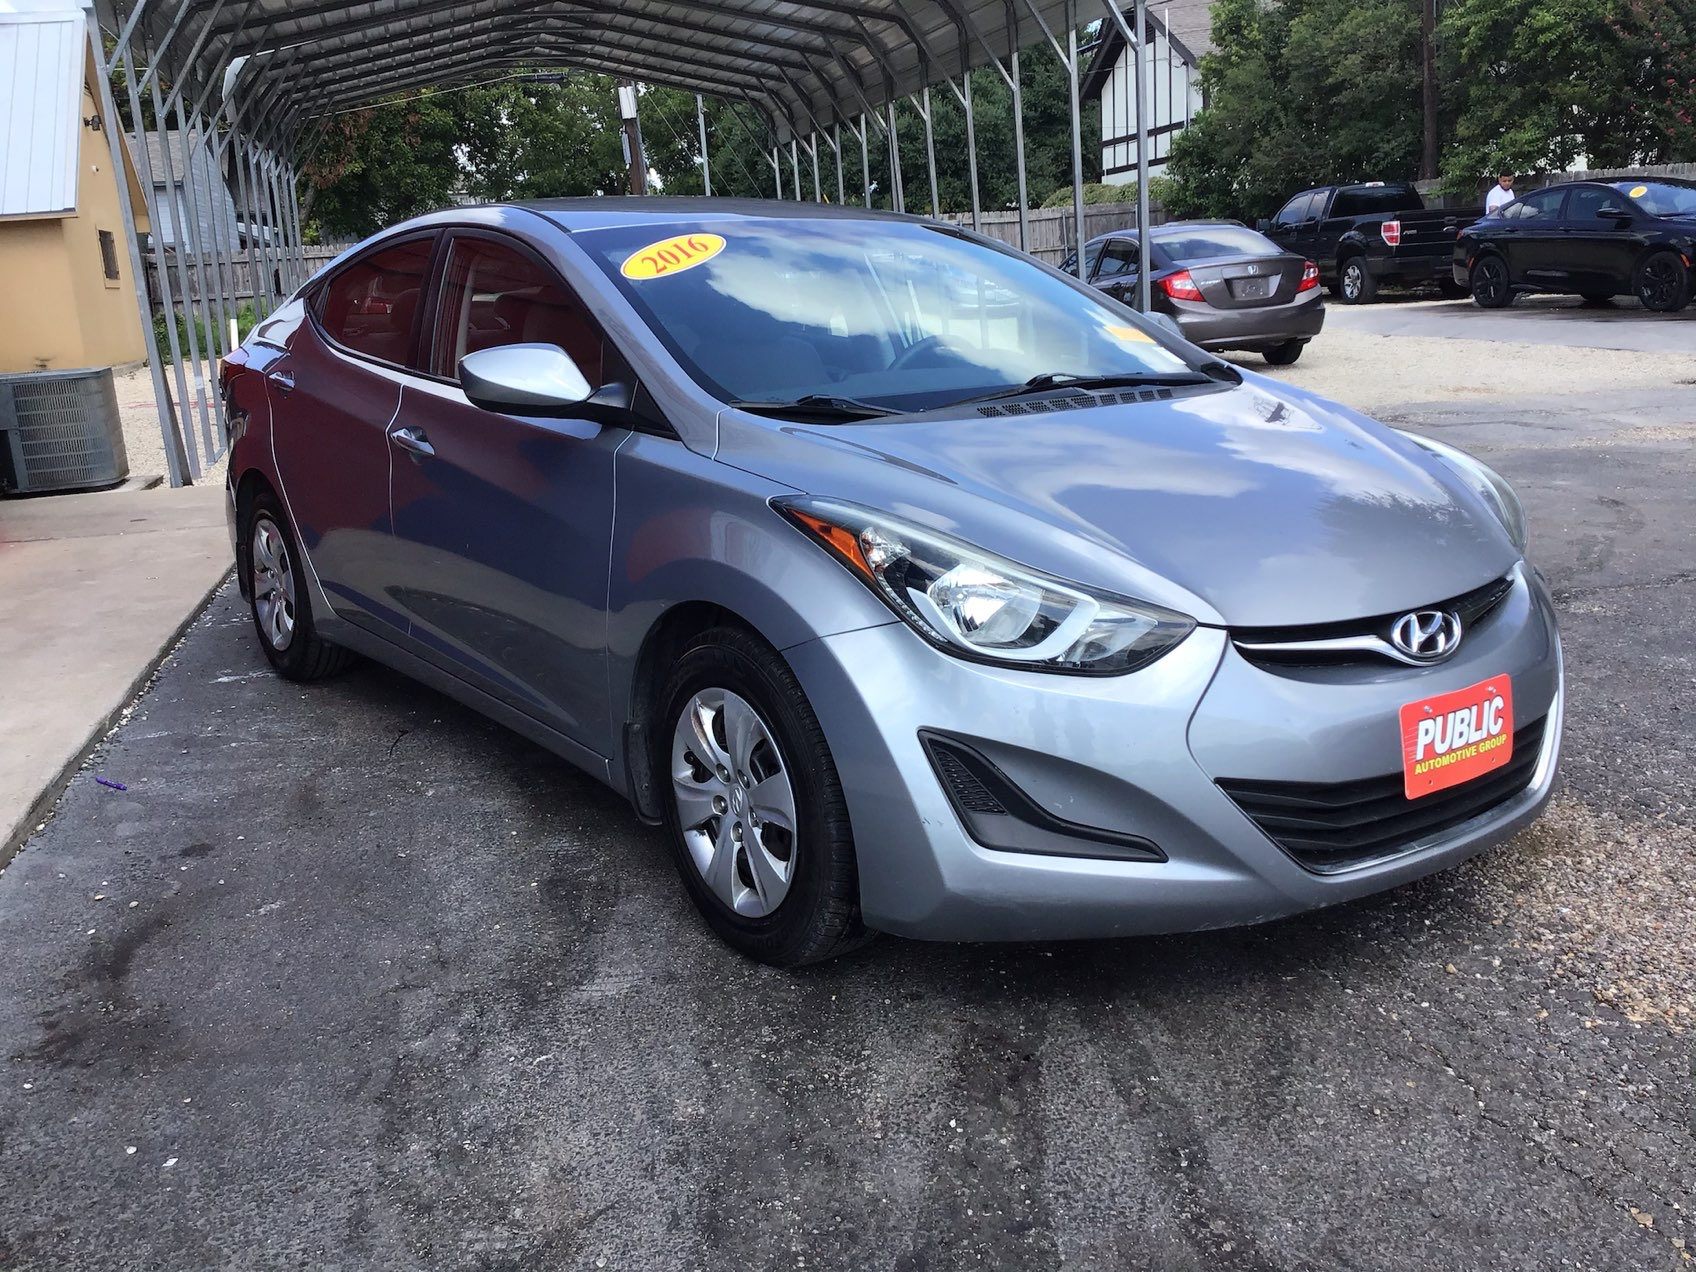 used vehicle - Sedan Hyundai Elantra 2016